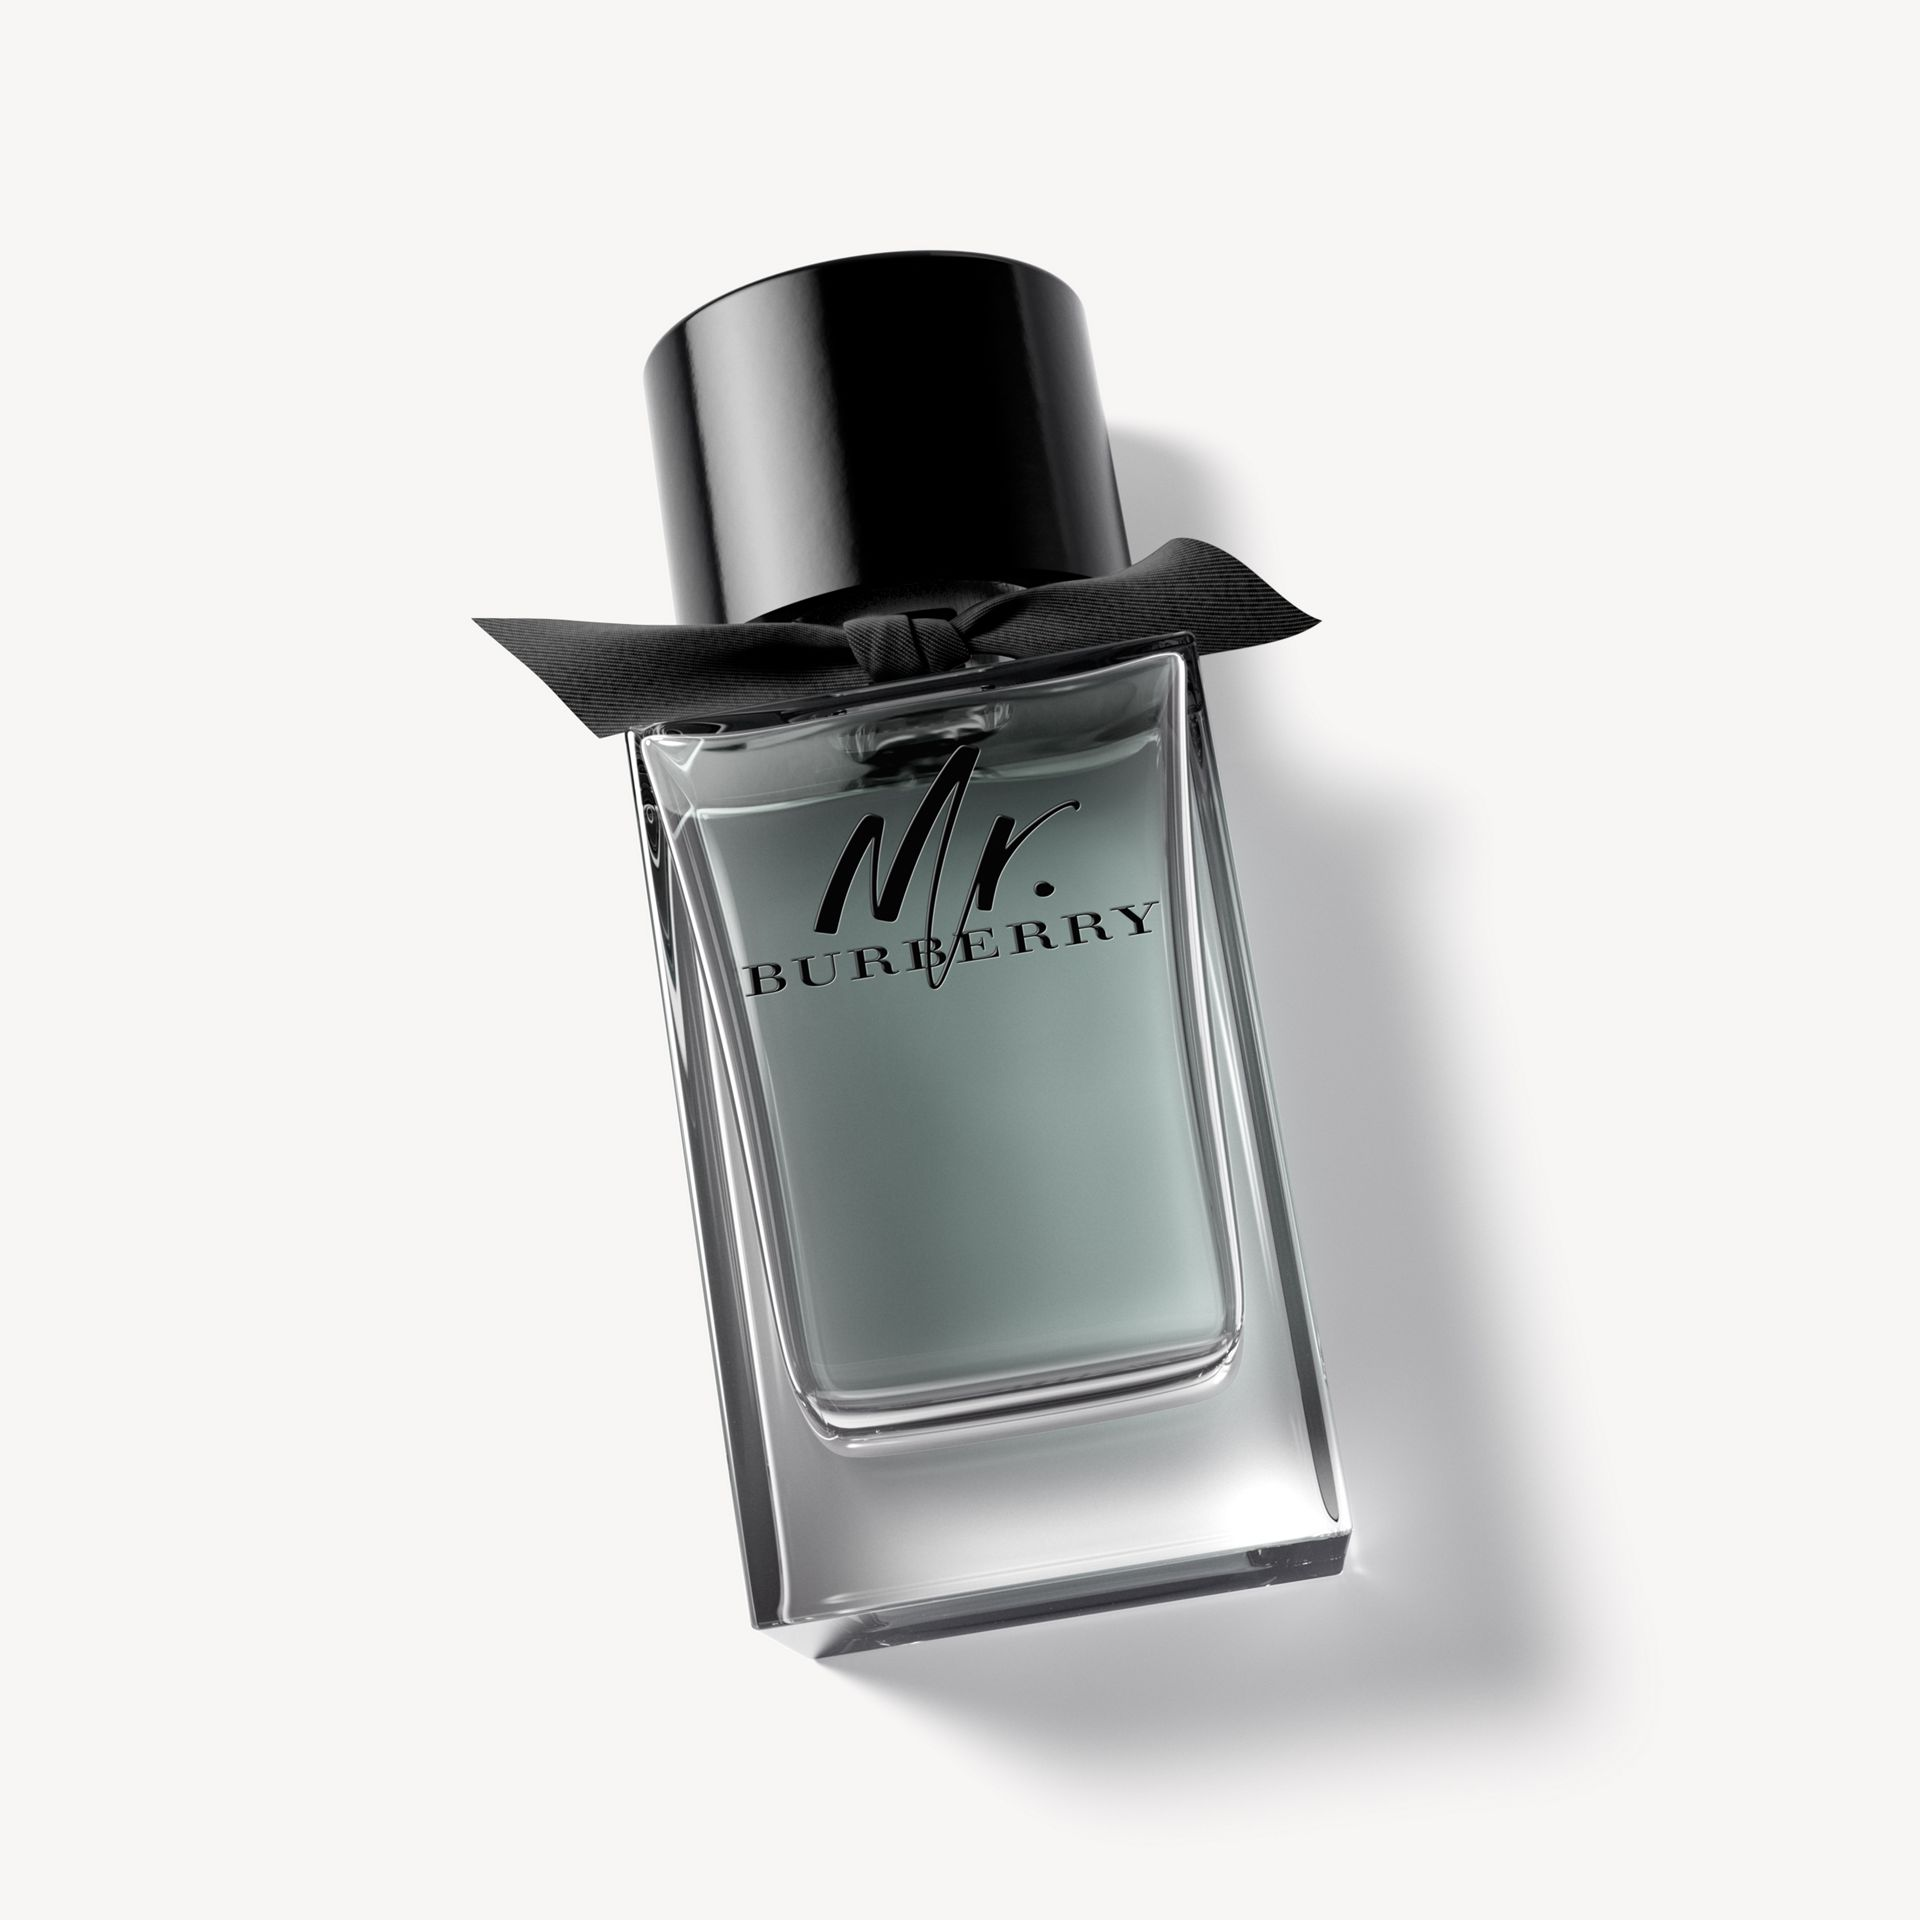 Mr. Burberry Eau de Toilette 1000 ml - Galerie-Bild 1